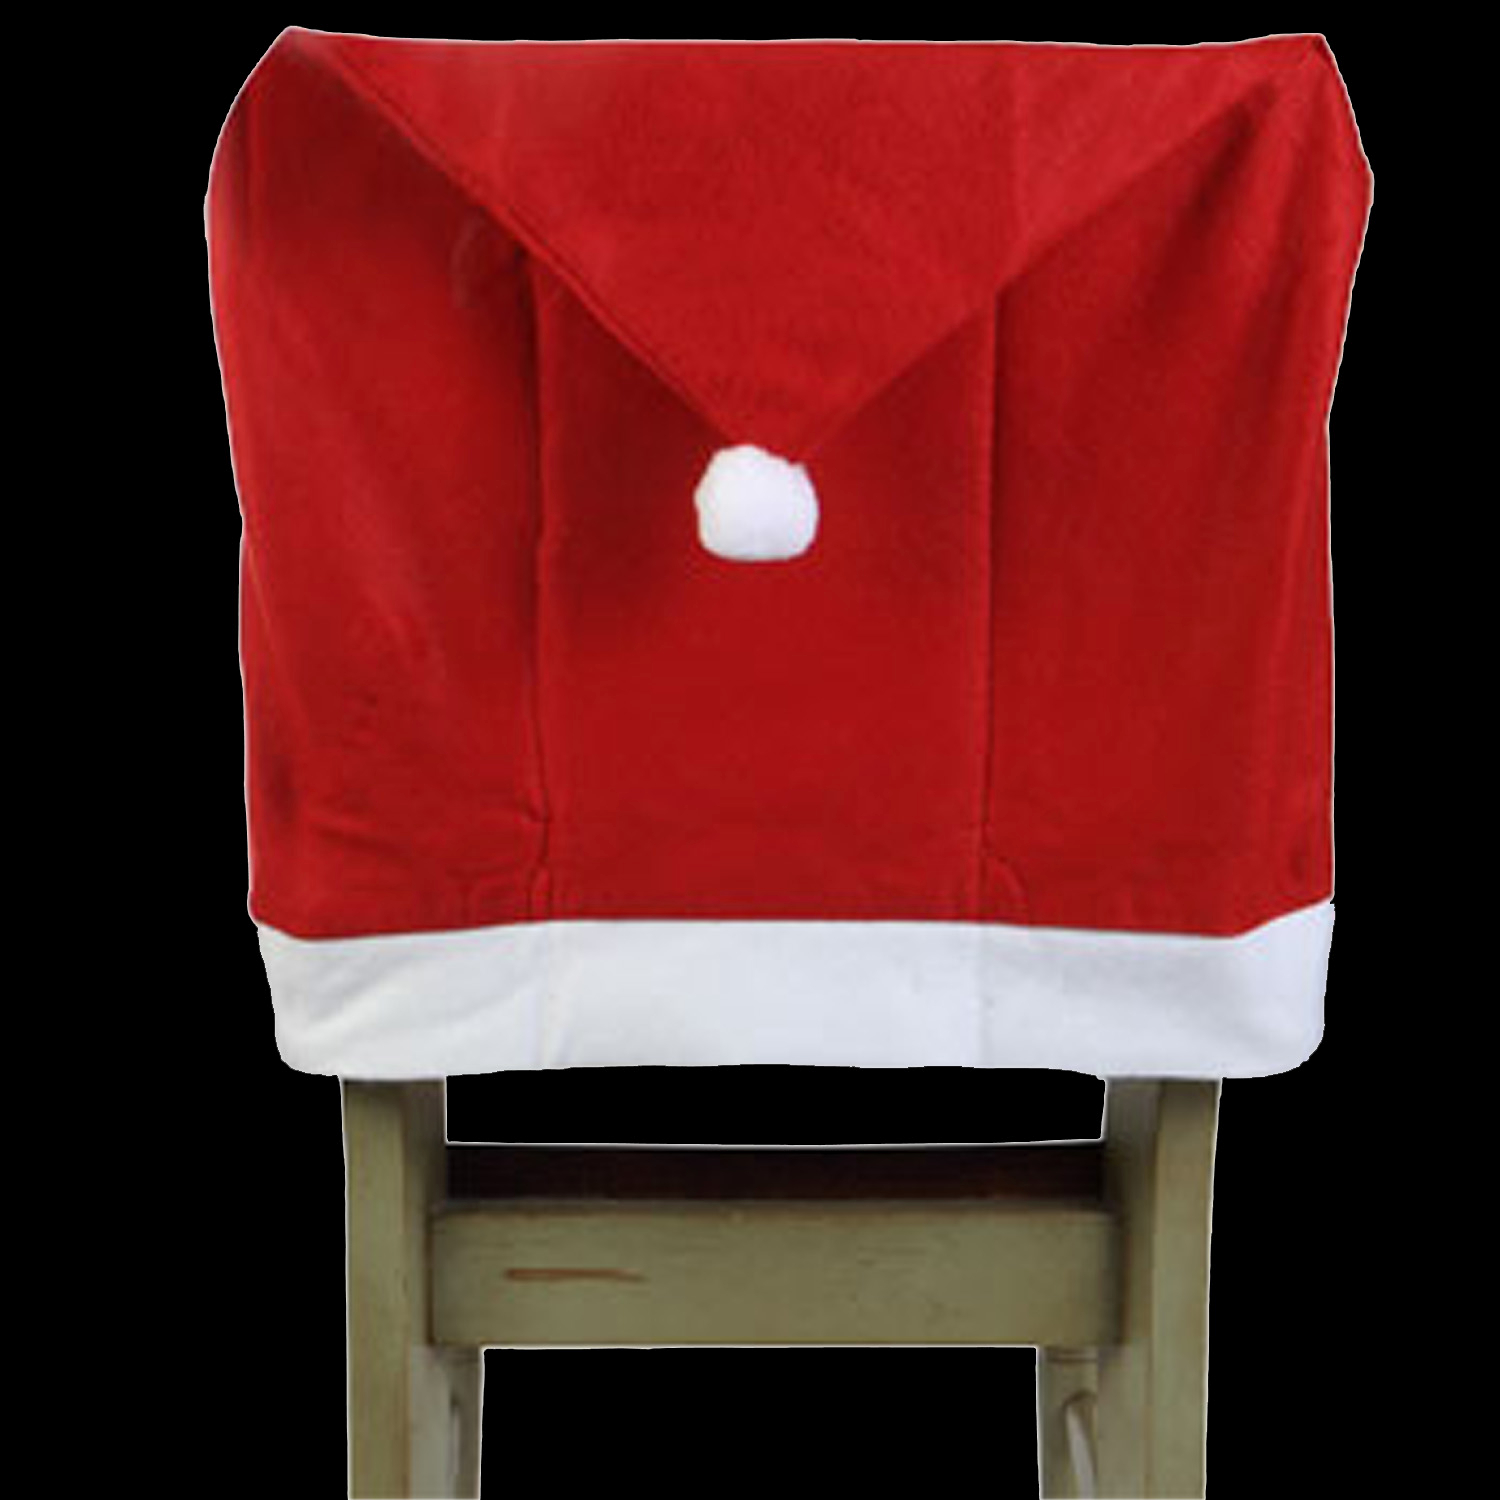 Awesome Christmas Red Santa Hat Cap Chair Cover Holiday Party Decoration Spiritservingveterans Wood Chair Design Ideas Spiritservingveteransorg